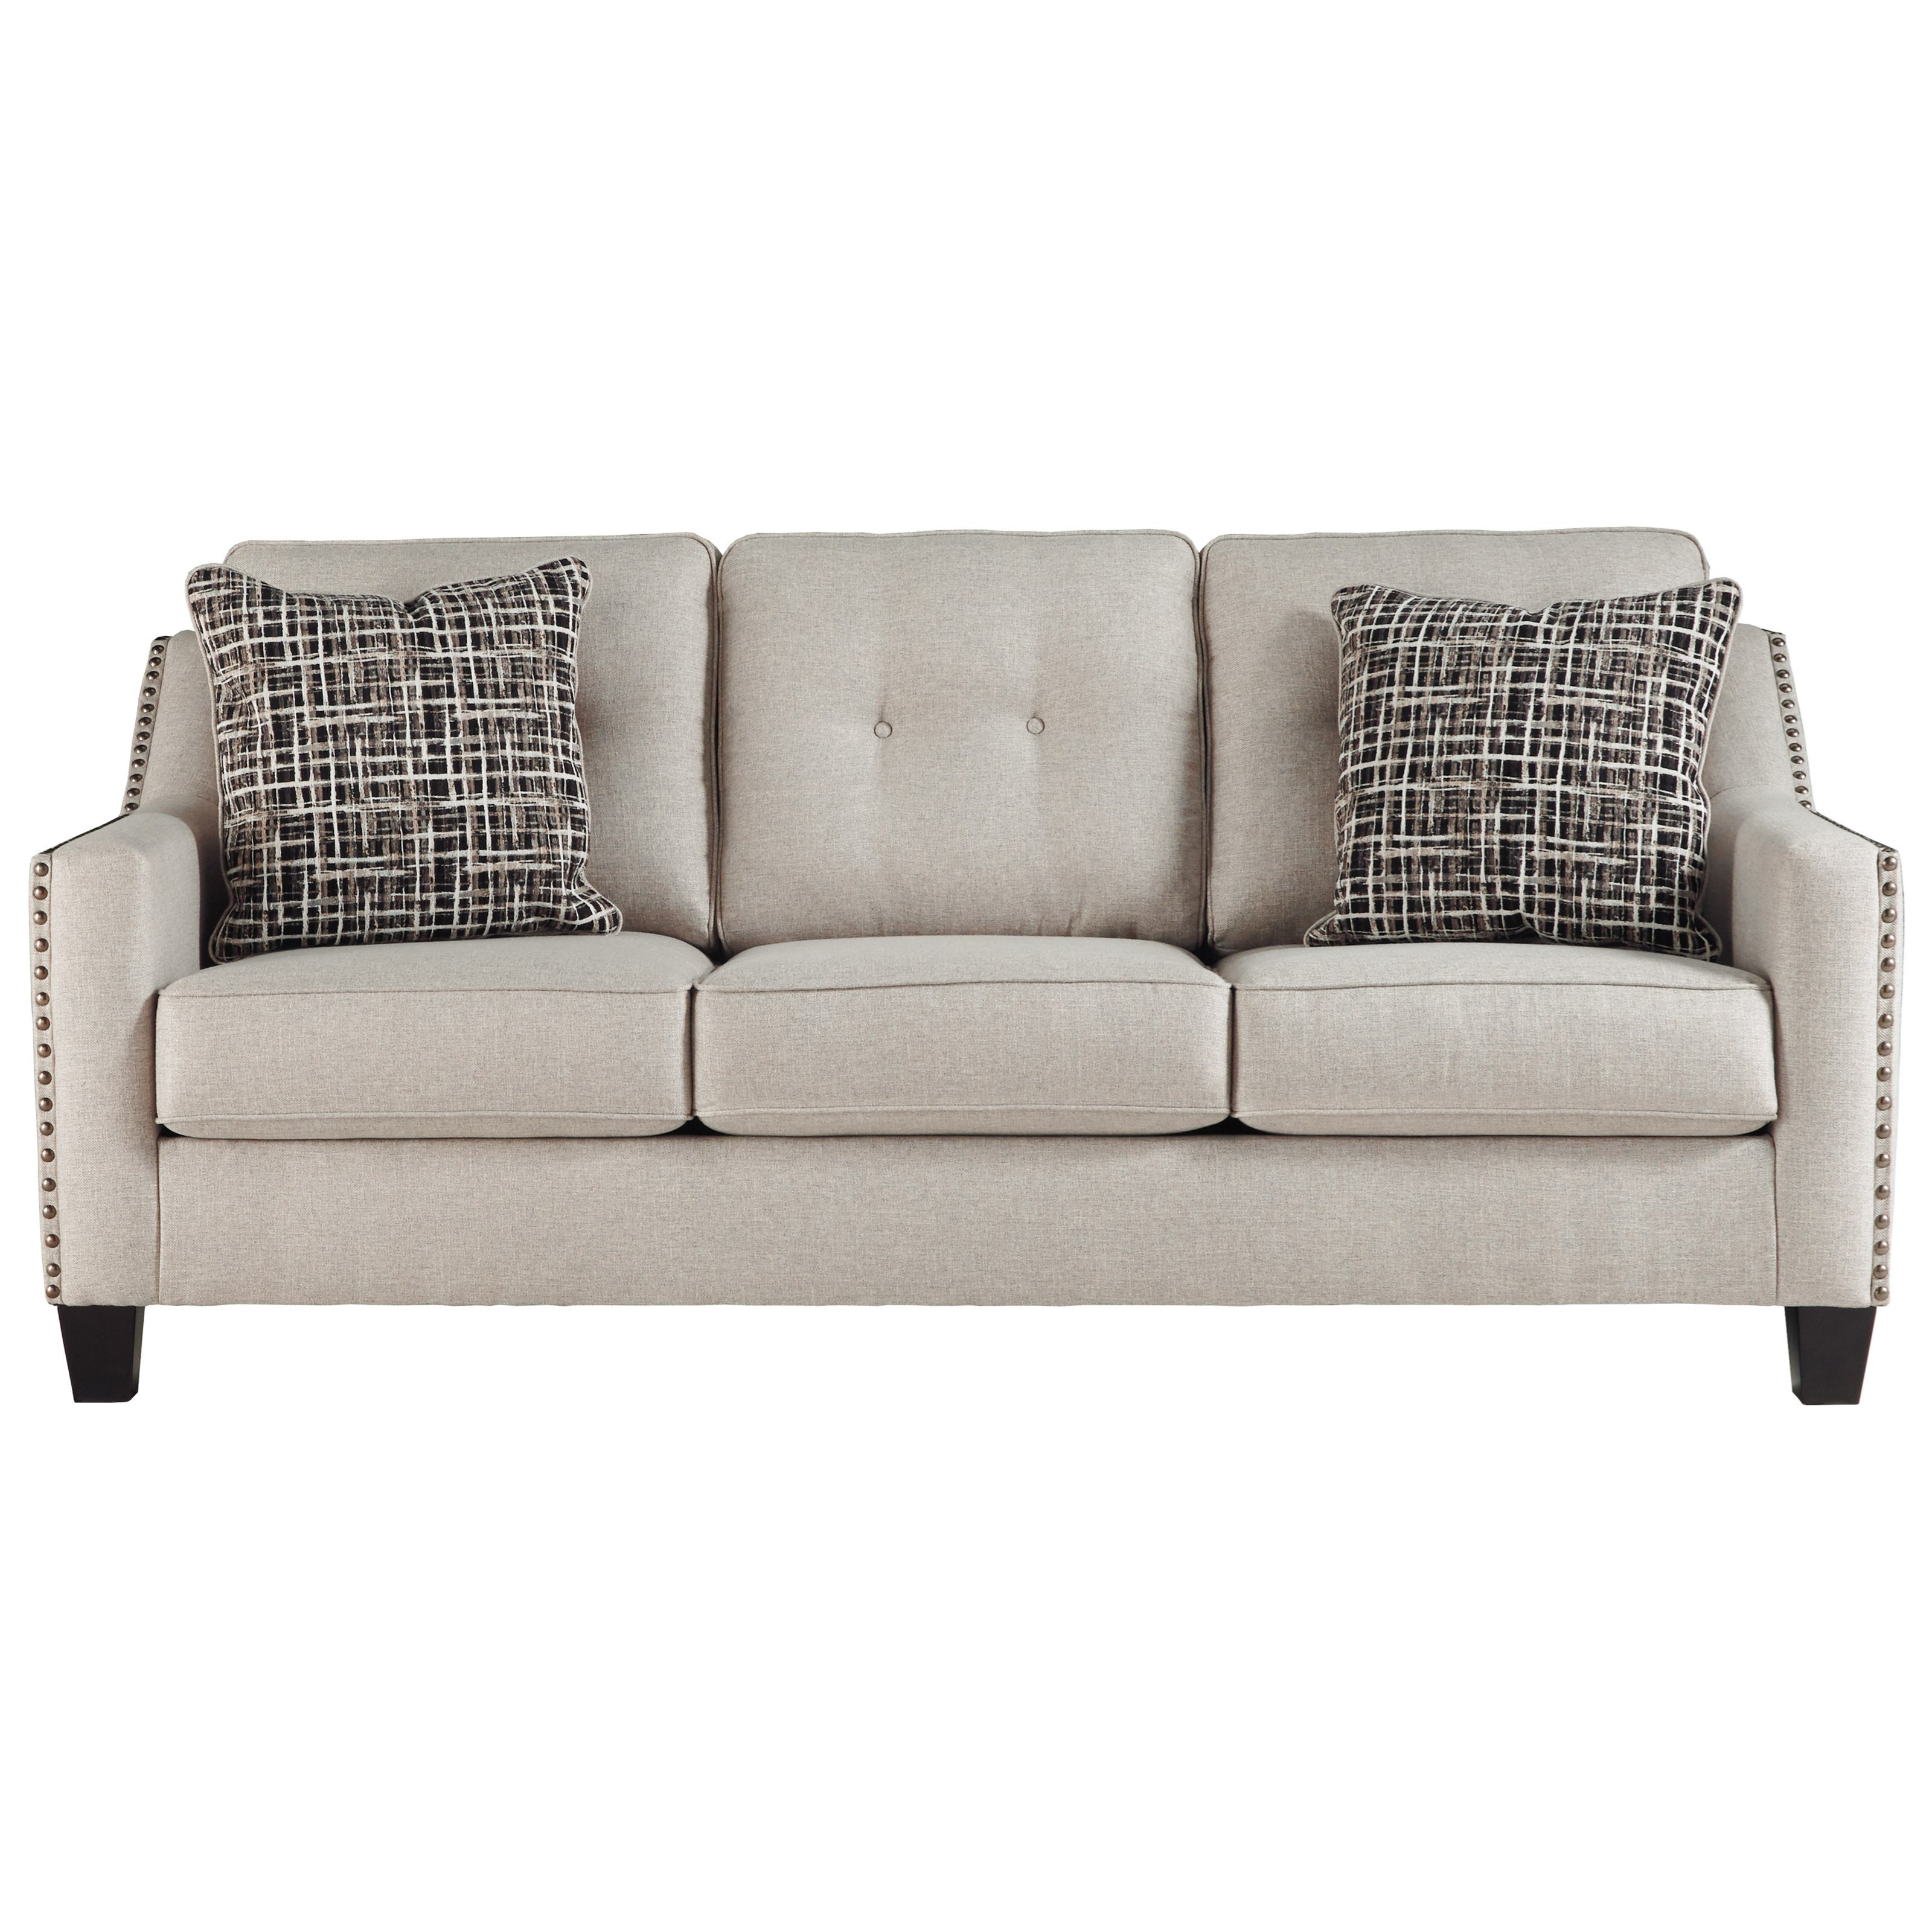 nailhead trim sofa ashley z gallerie harrison reviews benchcraft by marrero contemporary with